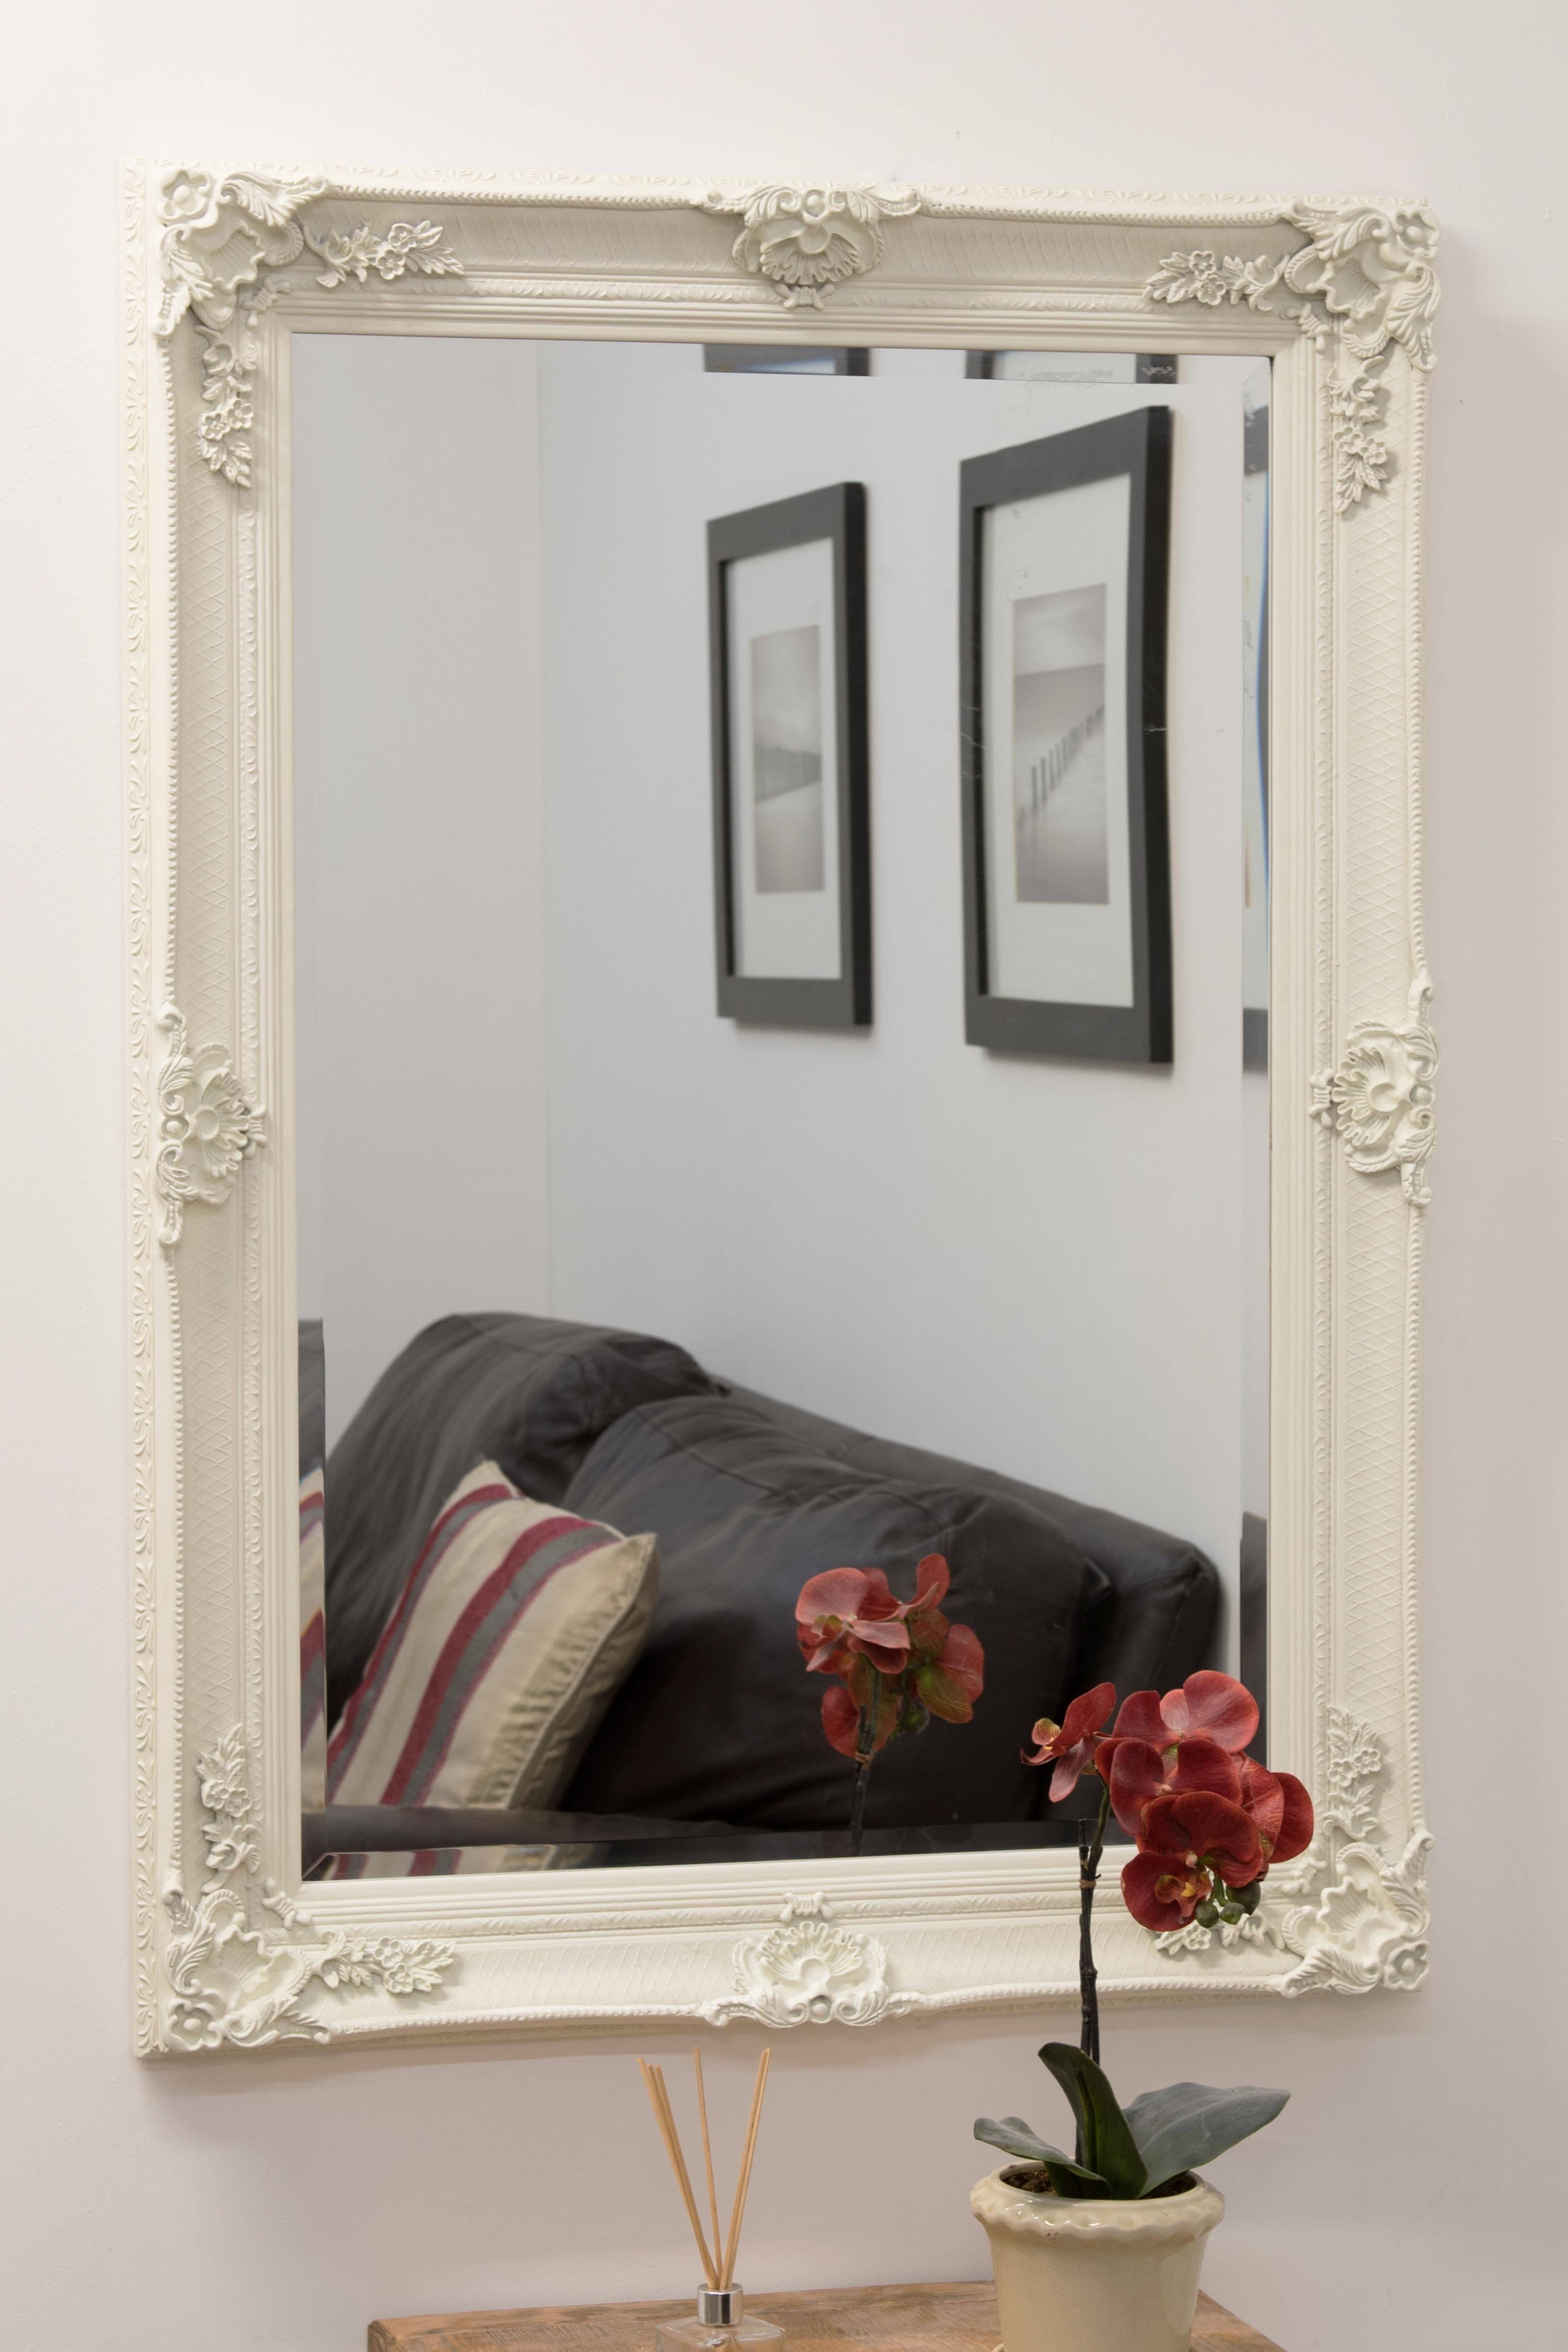 Extra Large Mirrors For Walls 121 Enchanting Ideas With Oversized for Extra Large Ornate Mirrors (Image 7 of 25)